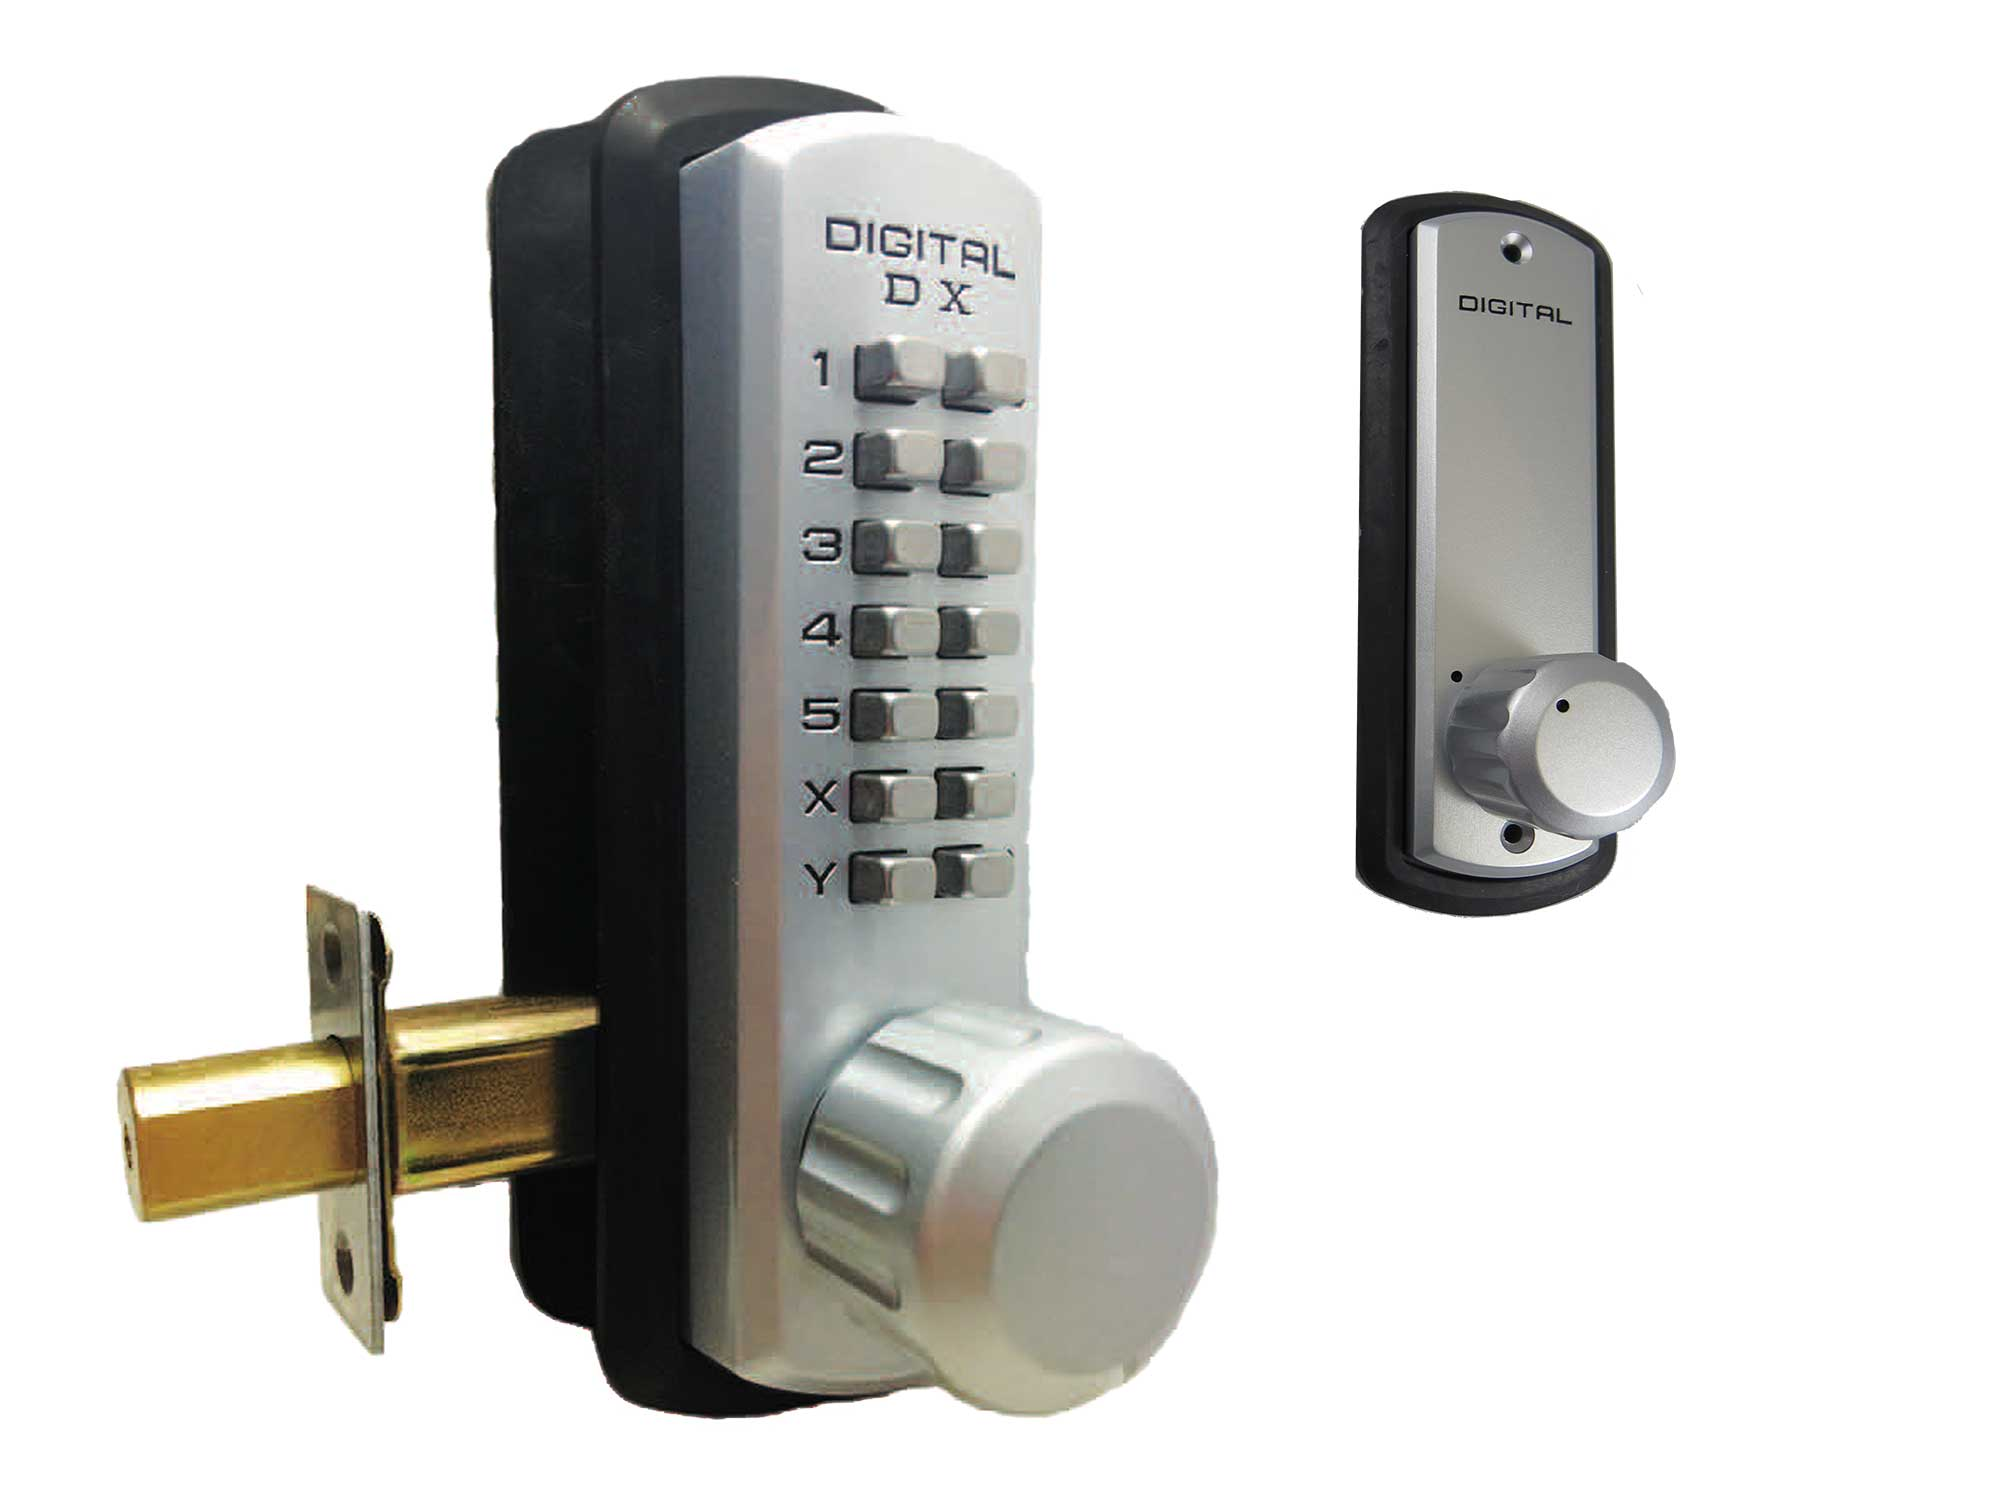 Lockey 3210 Marine-Grade Heavy-Duty Deadbolt Keypad Lock - Click Image to Close